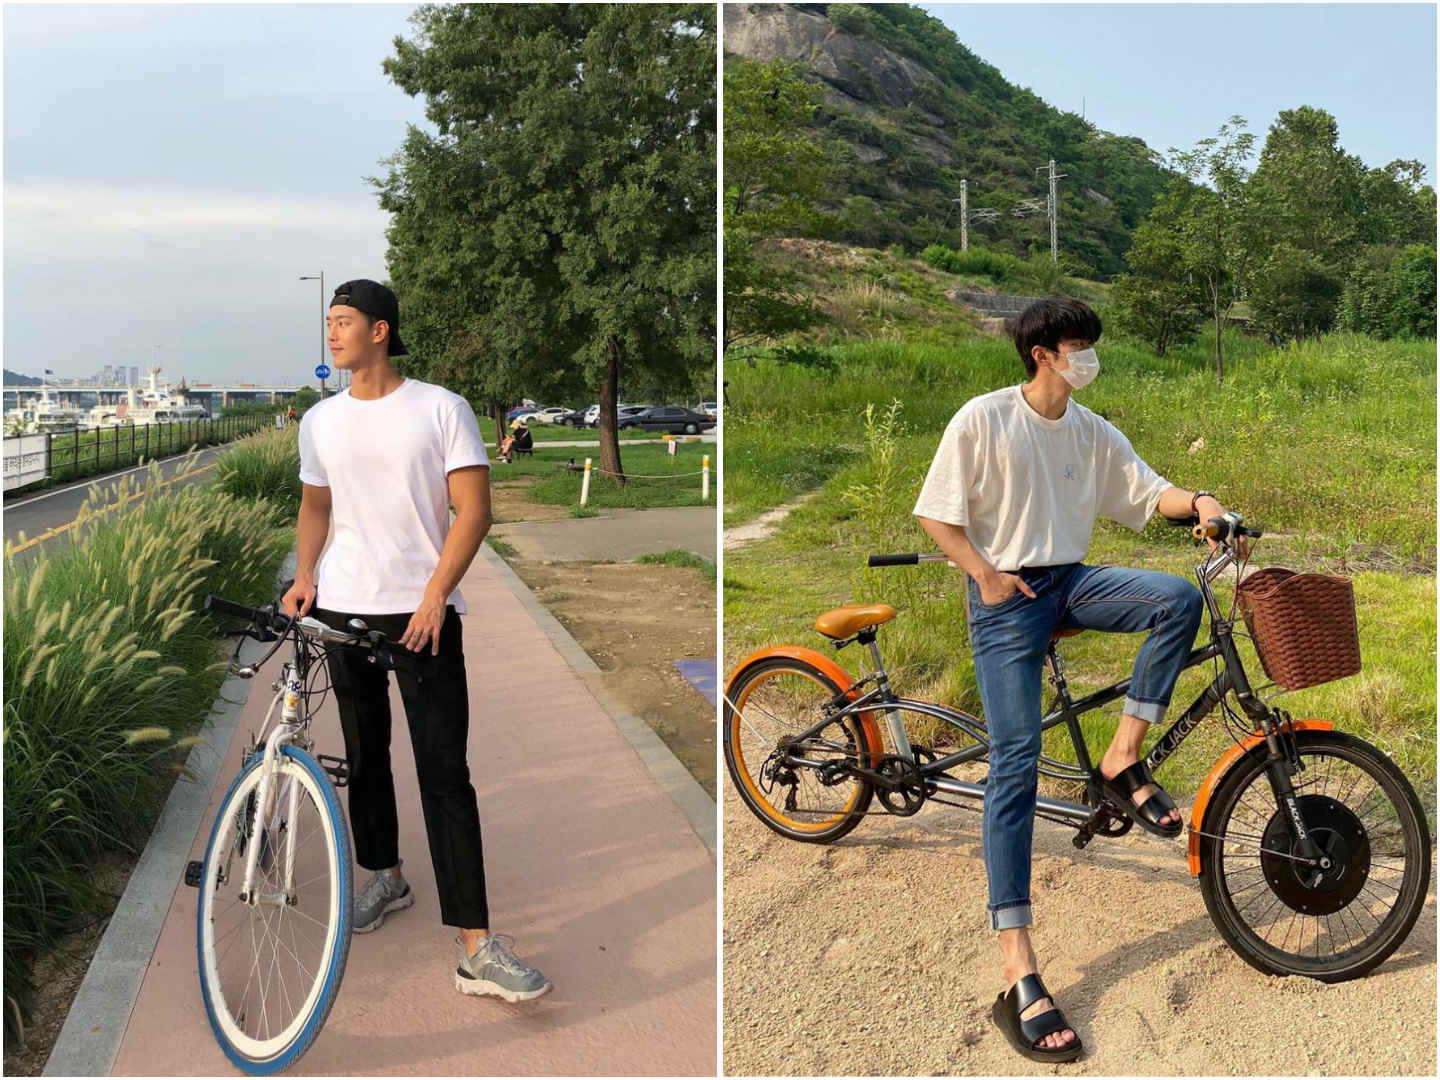 Photo Poses For Men - Pose with a bicycle